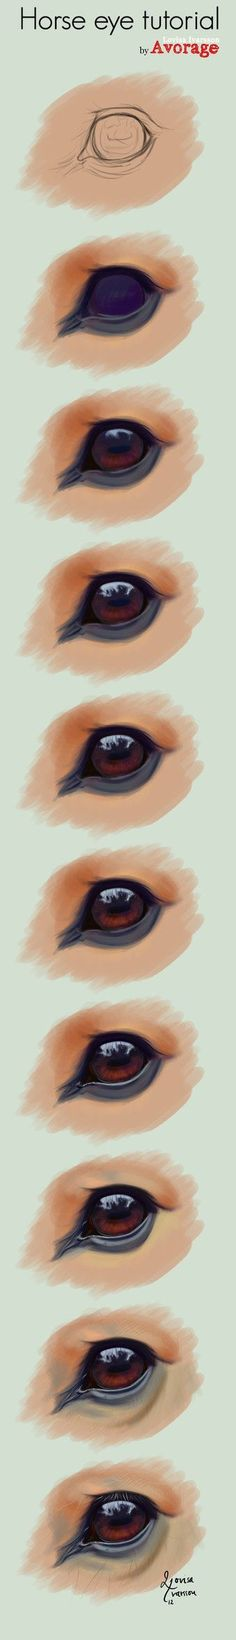 horse drawing tutorial horse eye ... want to paint this on wooden disc with a dark center